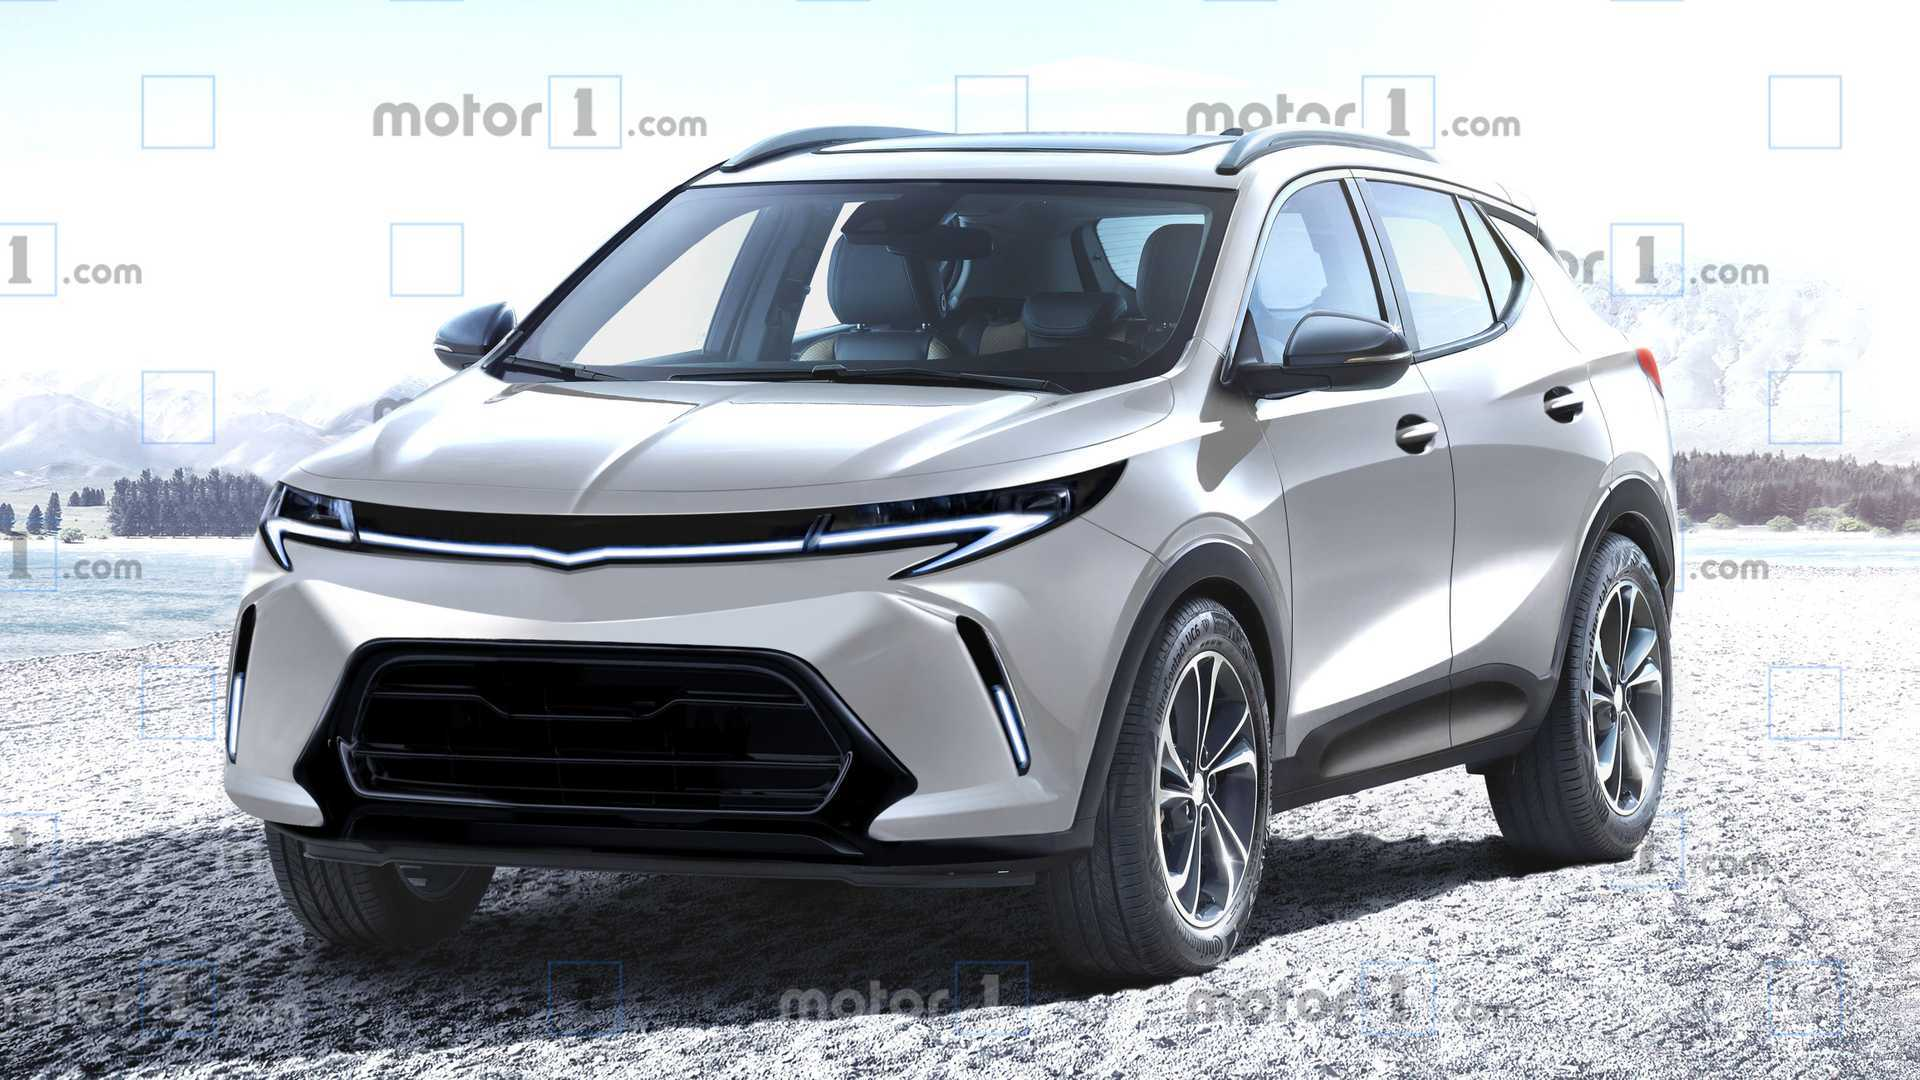 New Chevy Bolt Ev To Launch In Late 2020 Bolt Crossover In 2021